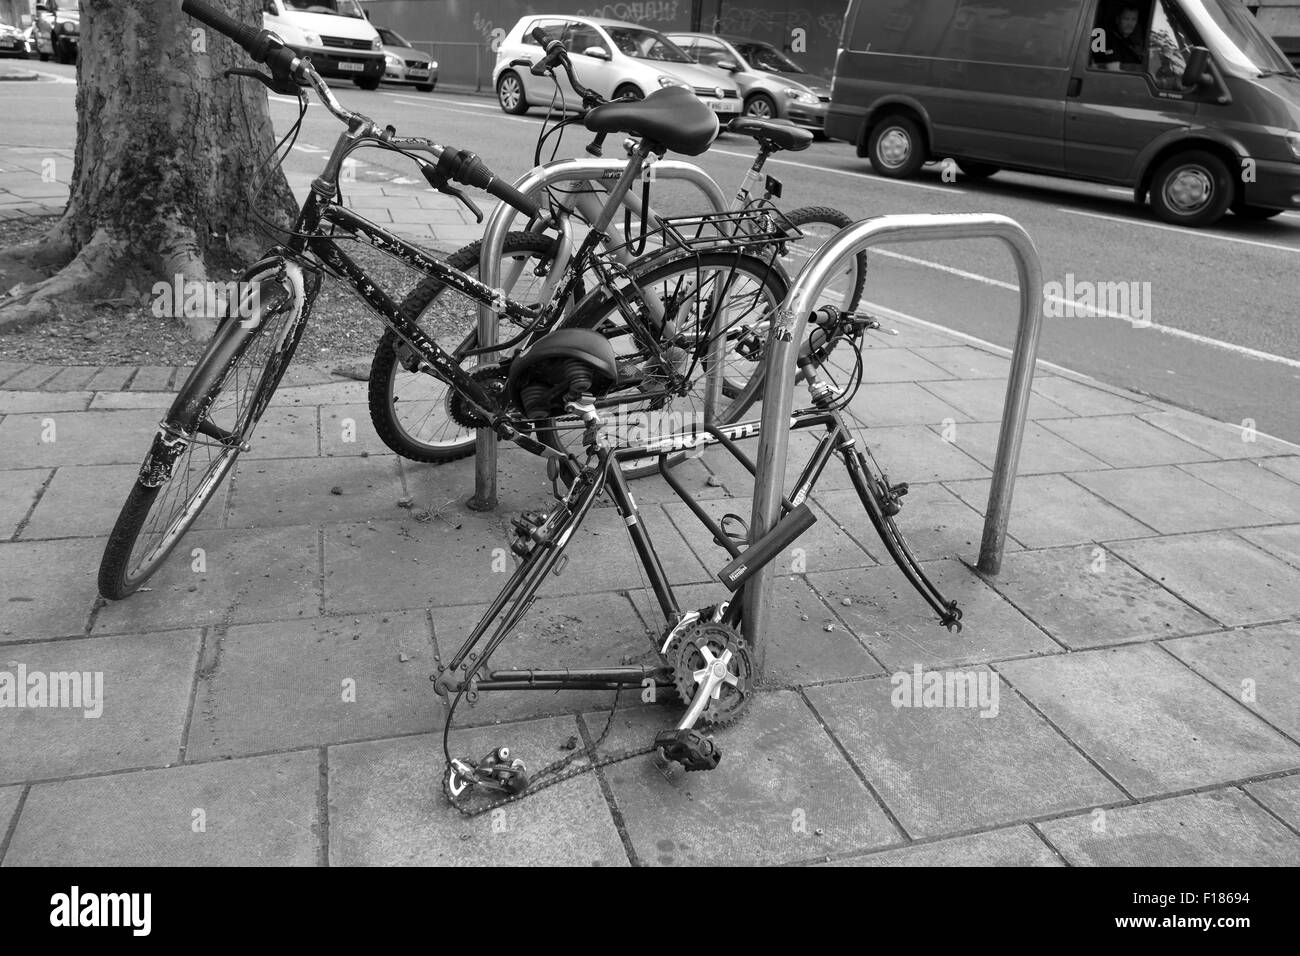 Remains of an old bike in Central Bristol after the wheels have been stolen, August 2015 - Stock Image